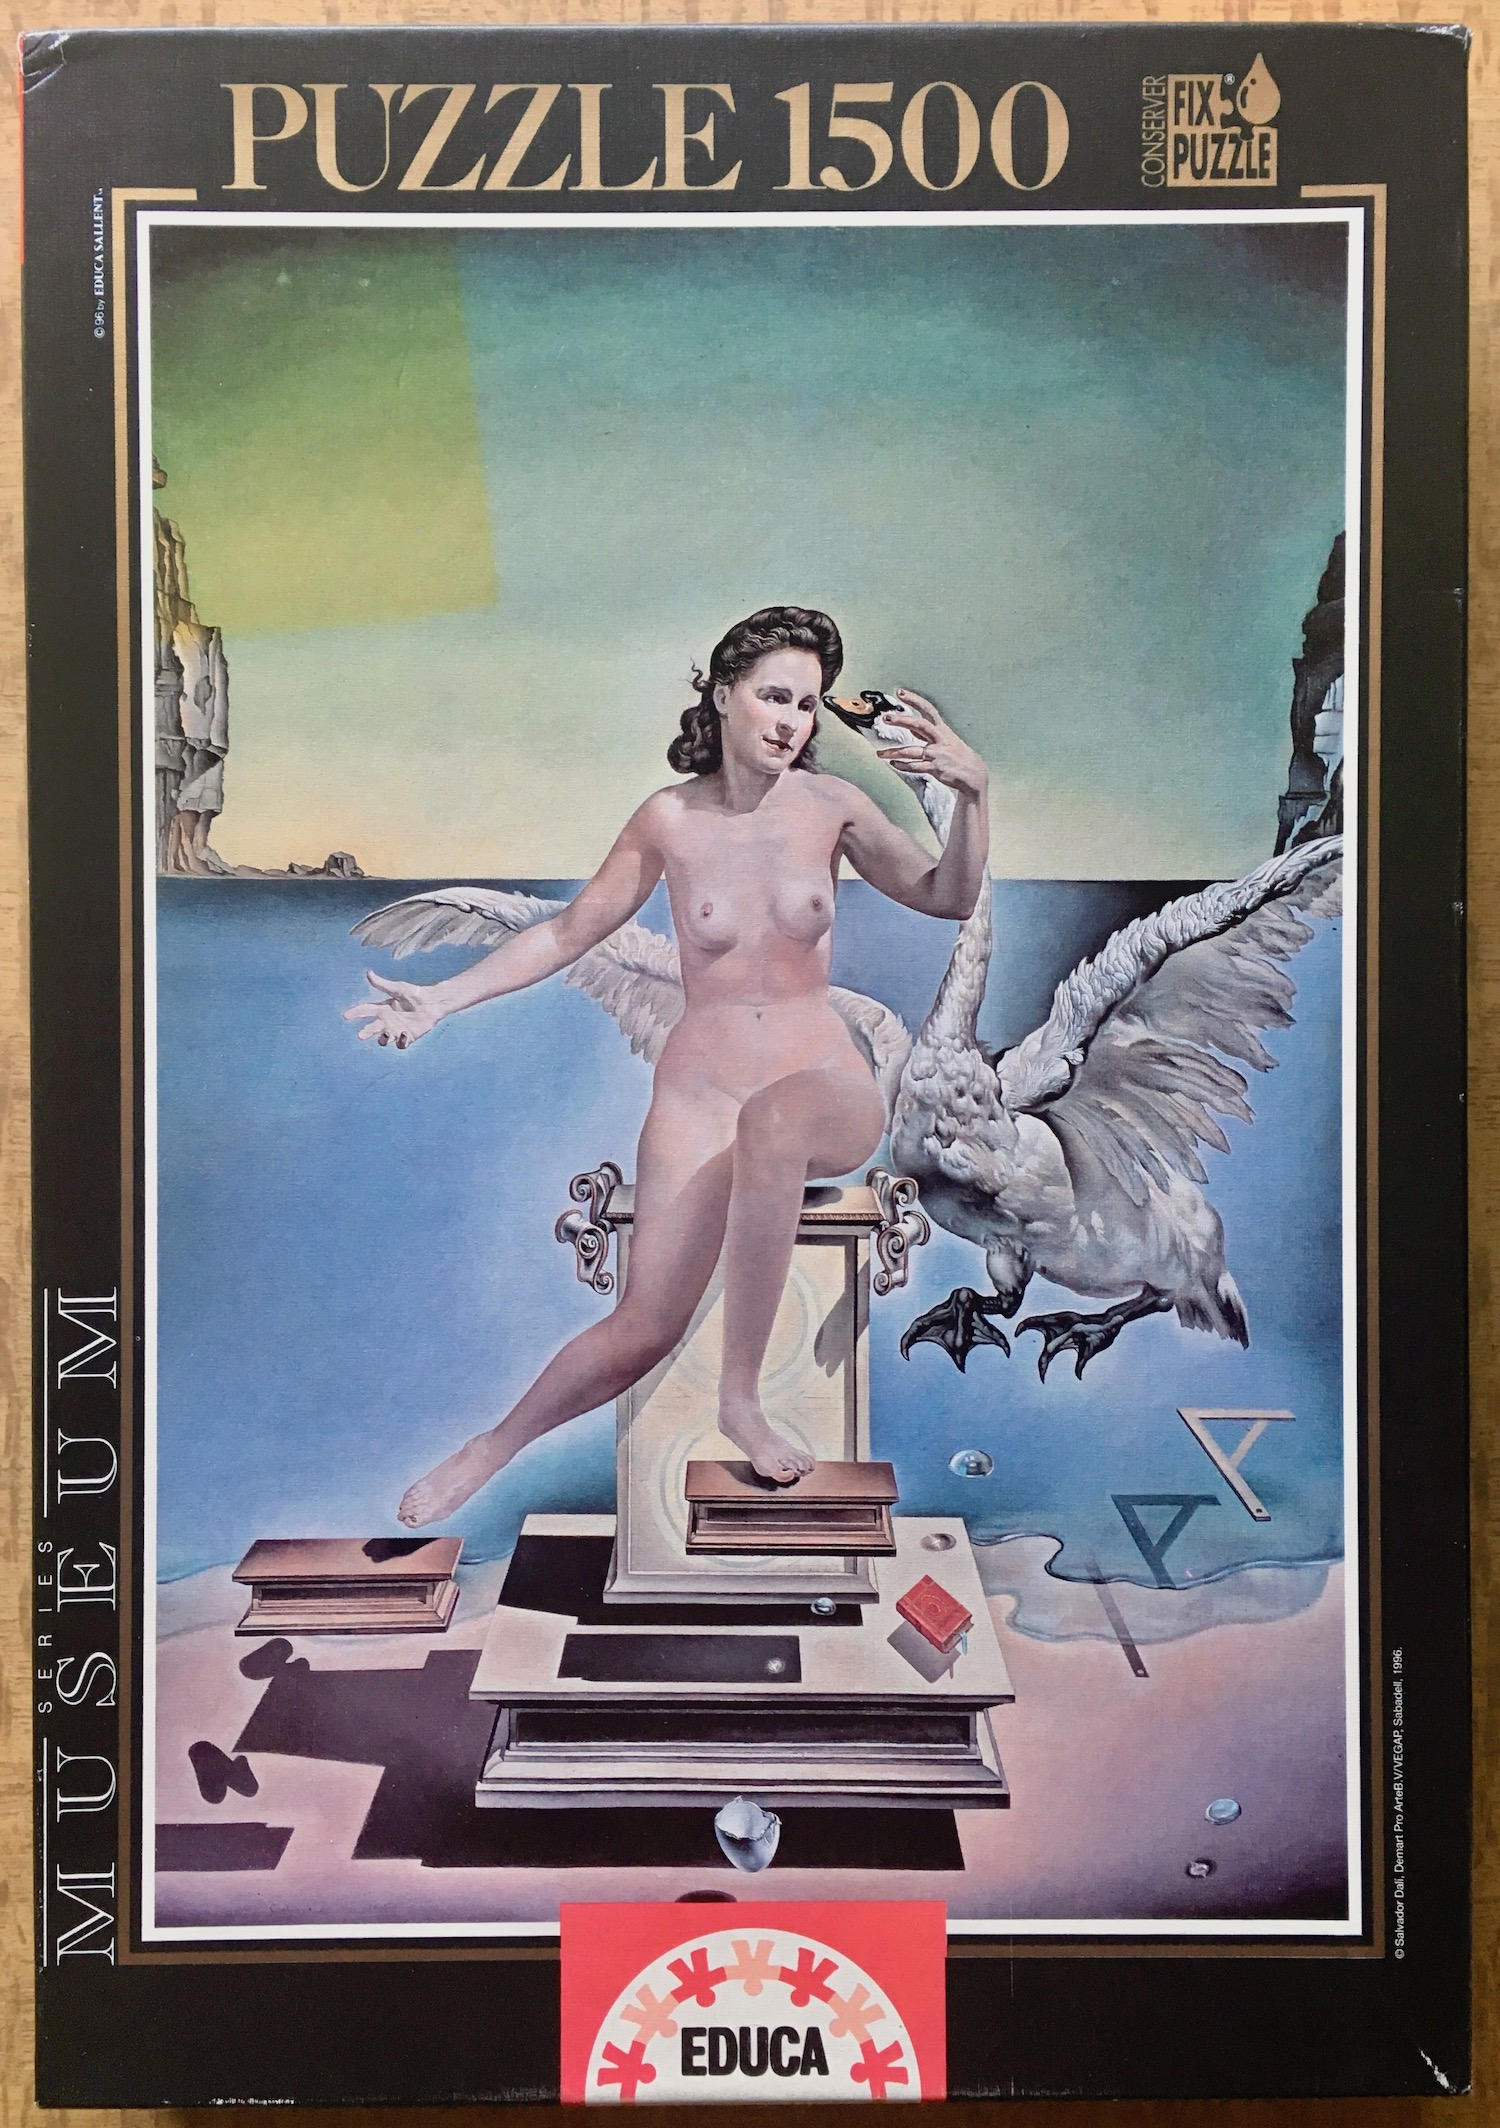 Image of the puzzle 1500, Educa, Leda Atomica, by Salvador Dalí, Picture of the box, Blog Post